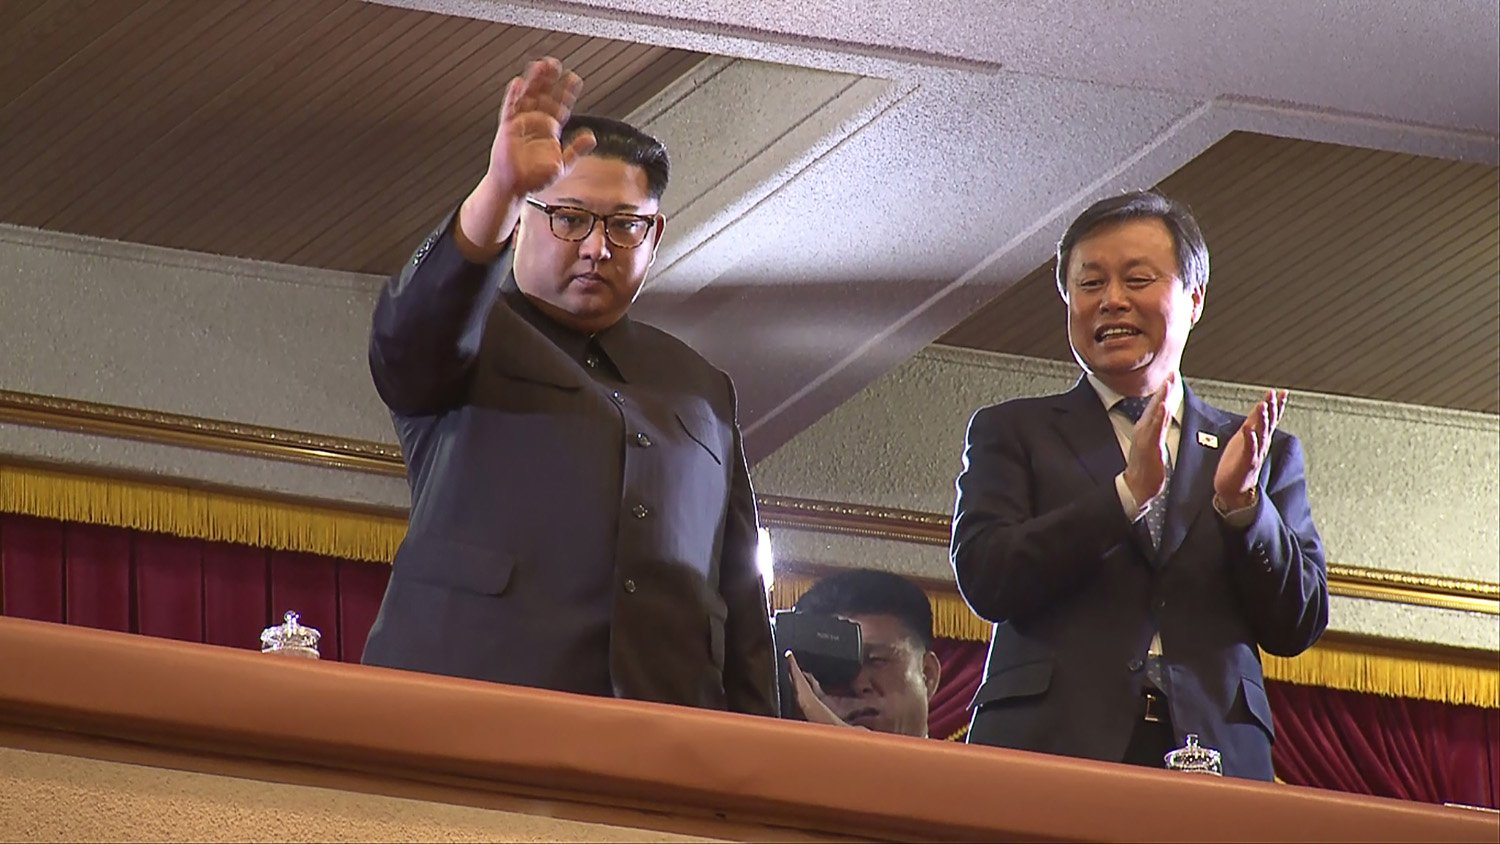 This picture captured from a video footage by Korea Pool reporters shows North Korean leader Kim Jong Un (L) and South Korea's Culture, Sports and Tourism Minister Do Jong-whan (R) during a rare concert by South Korean musicians at the 1,500-seat East Pyongyang Grand Theatre in Pyongyang on April 1, 2018. North Korean leader Kim Jong Un on April 1 attended the first concert in Pyongyang for over a decade by South Korean entertainers, including a K-pop girlband, the latest gesture of reconciliation before a rare inter-Korean summit.  / AFP PHOTO / KOREA POOL / - / South Korea OUT